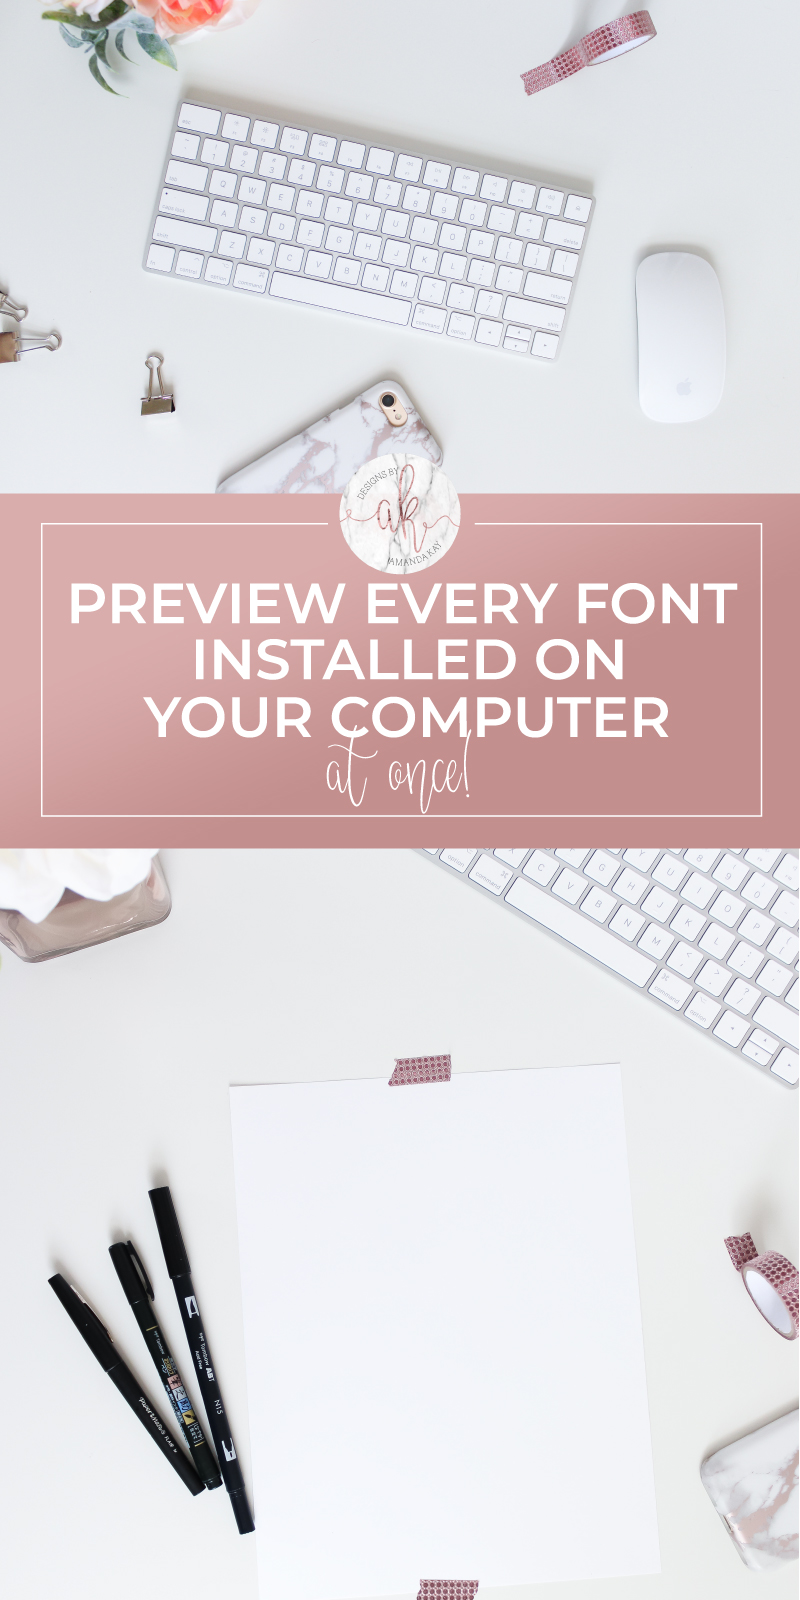 How to Preview Installed Fonts all at once!